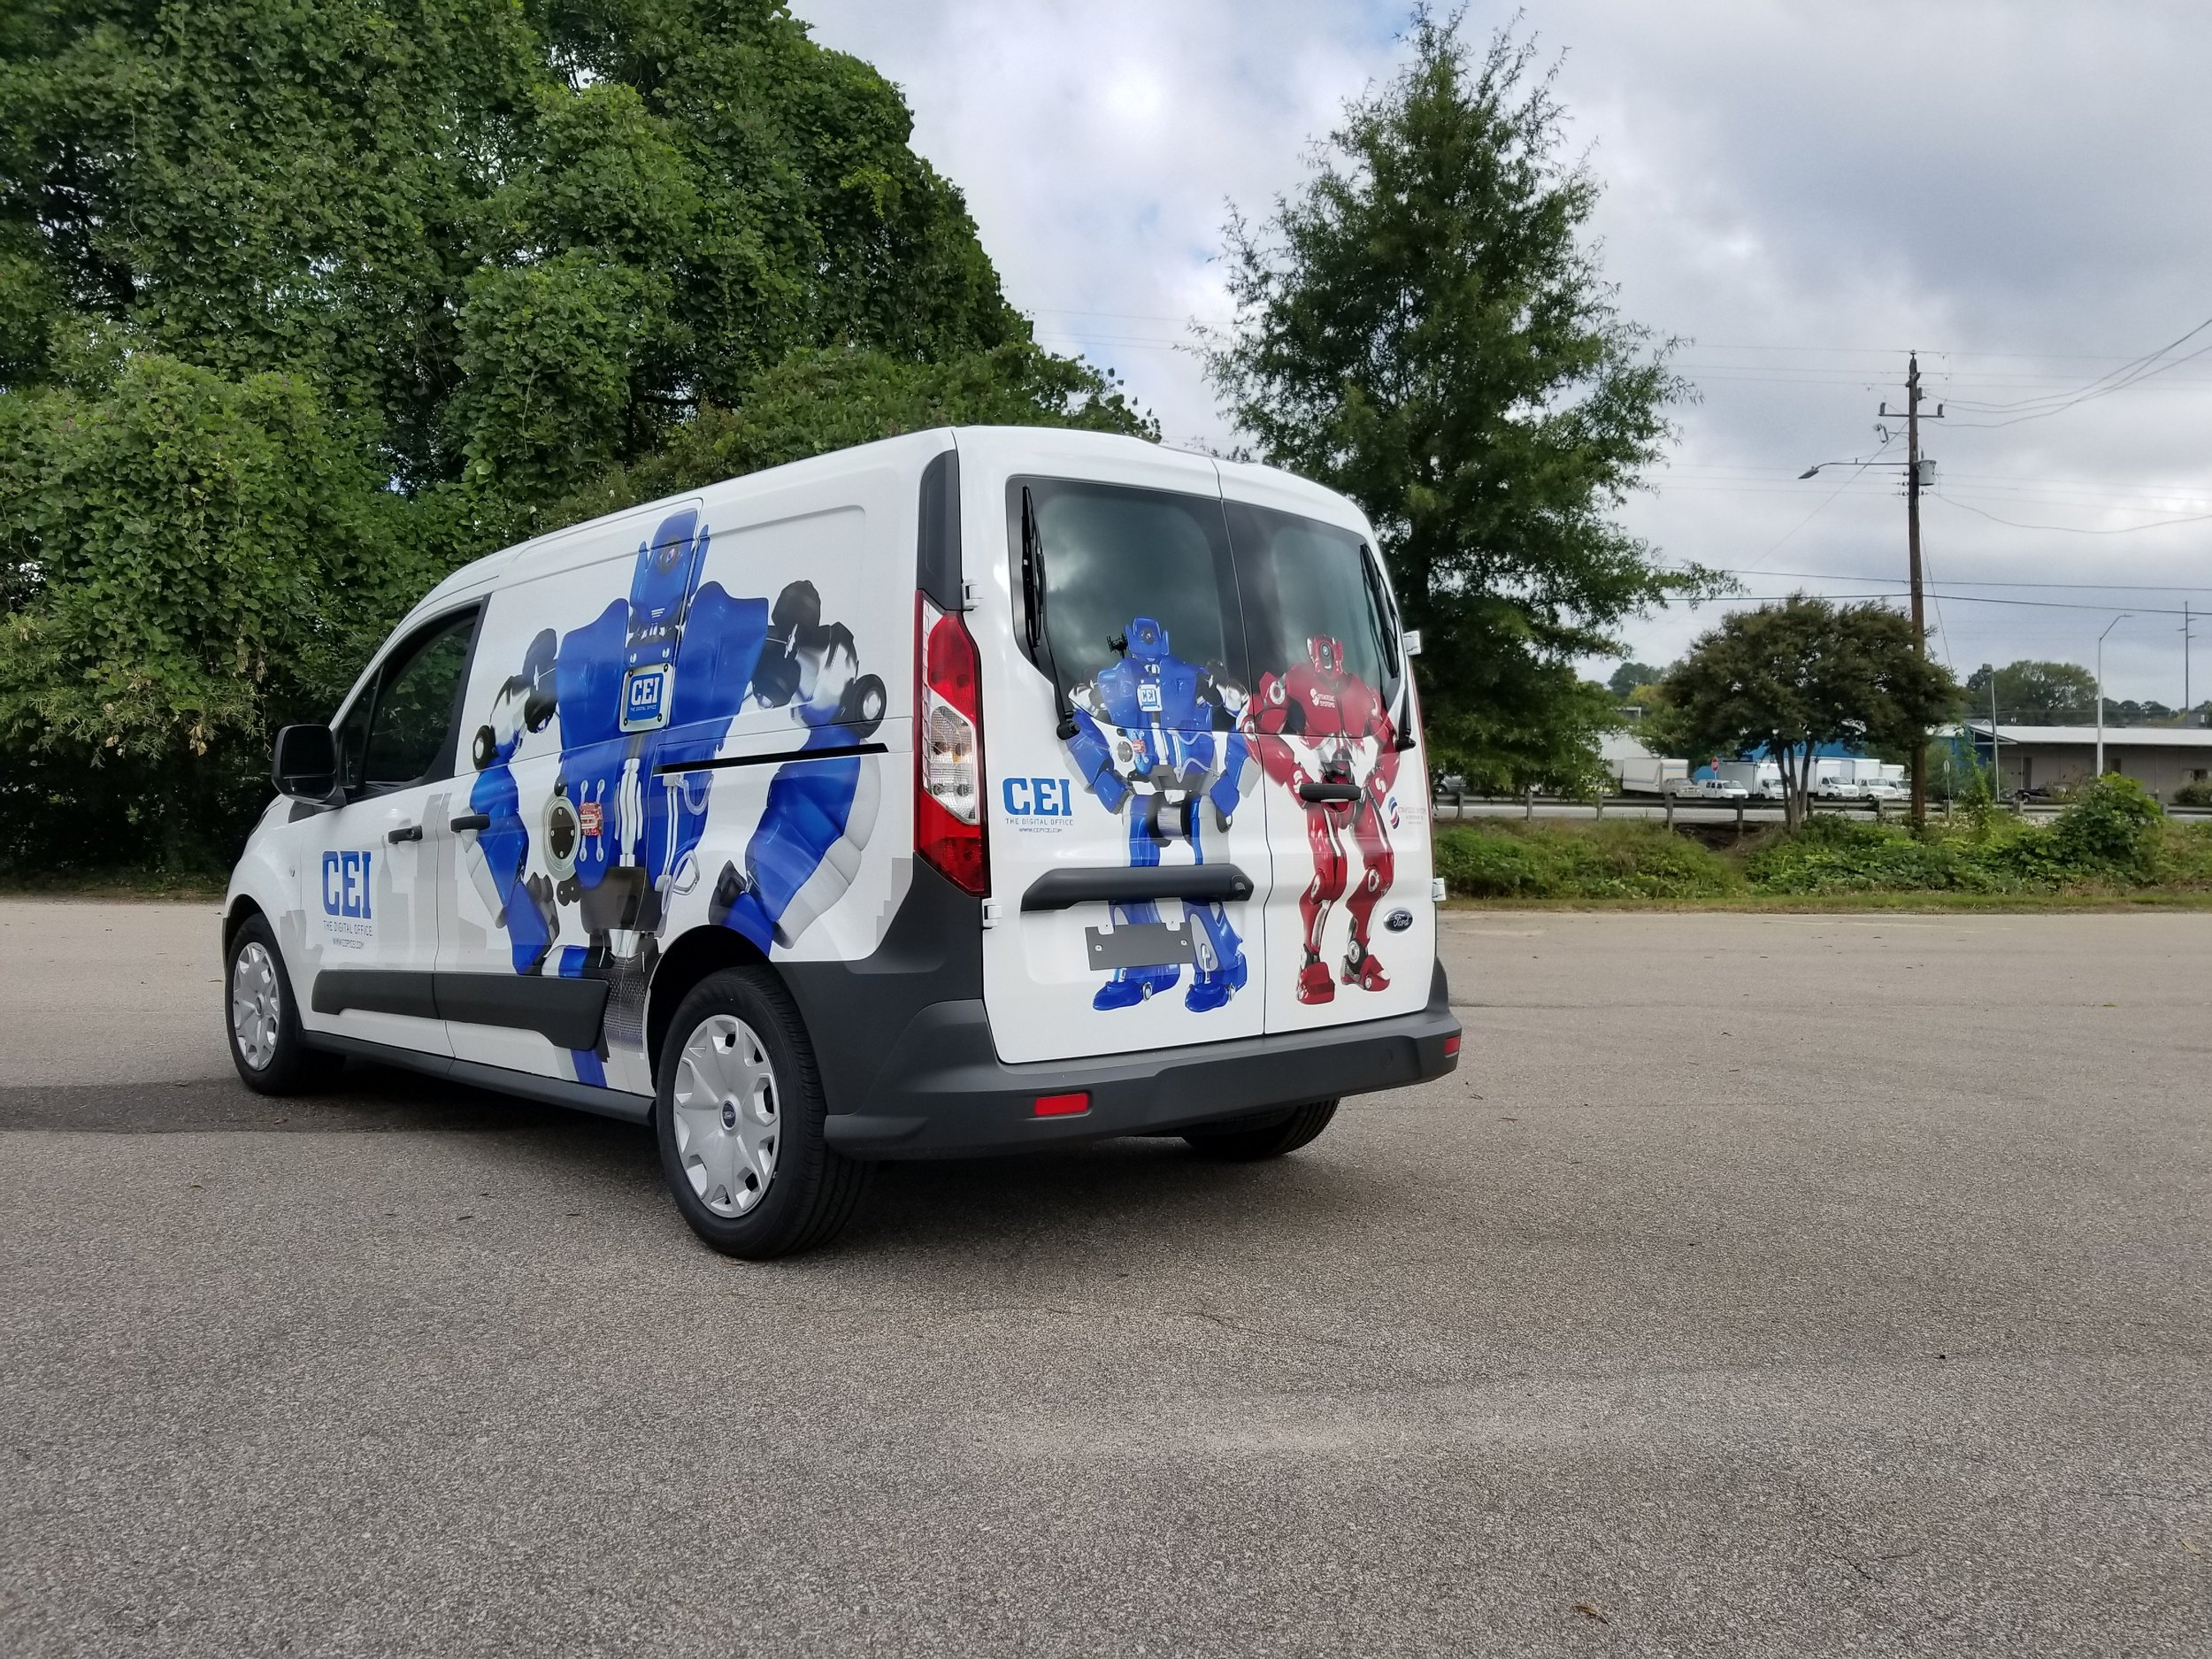 We have the capability to handle any fleet graphics project, big or small. See why the RTP area trusts Colorgraphic with any fleet graphics project.